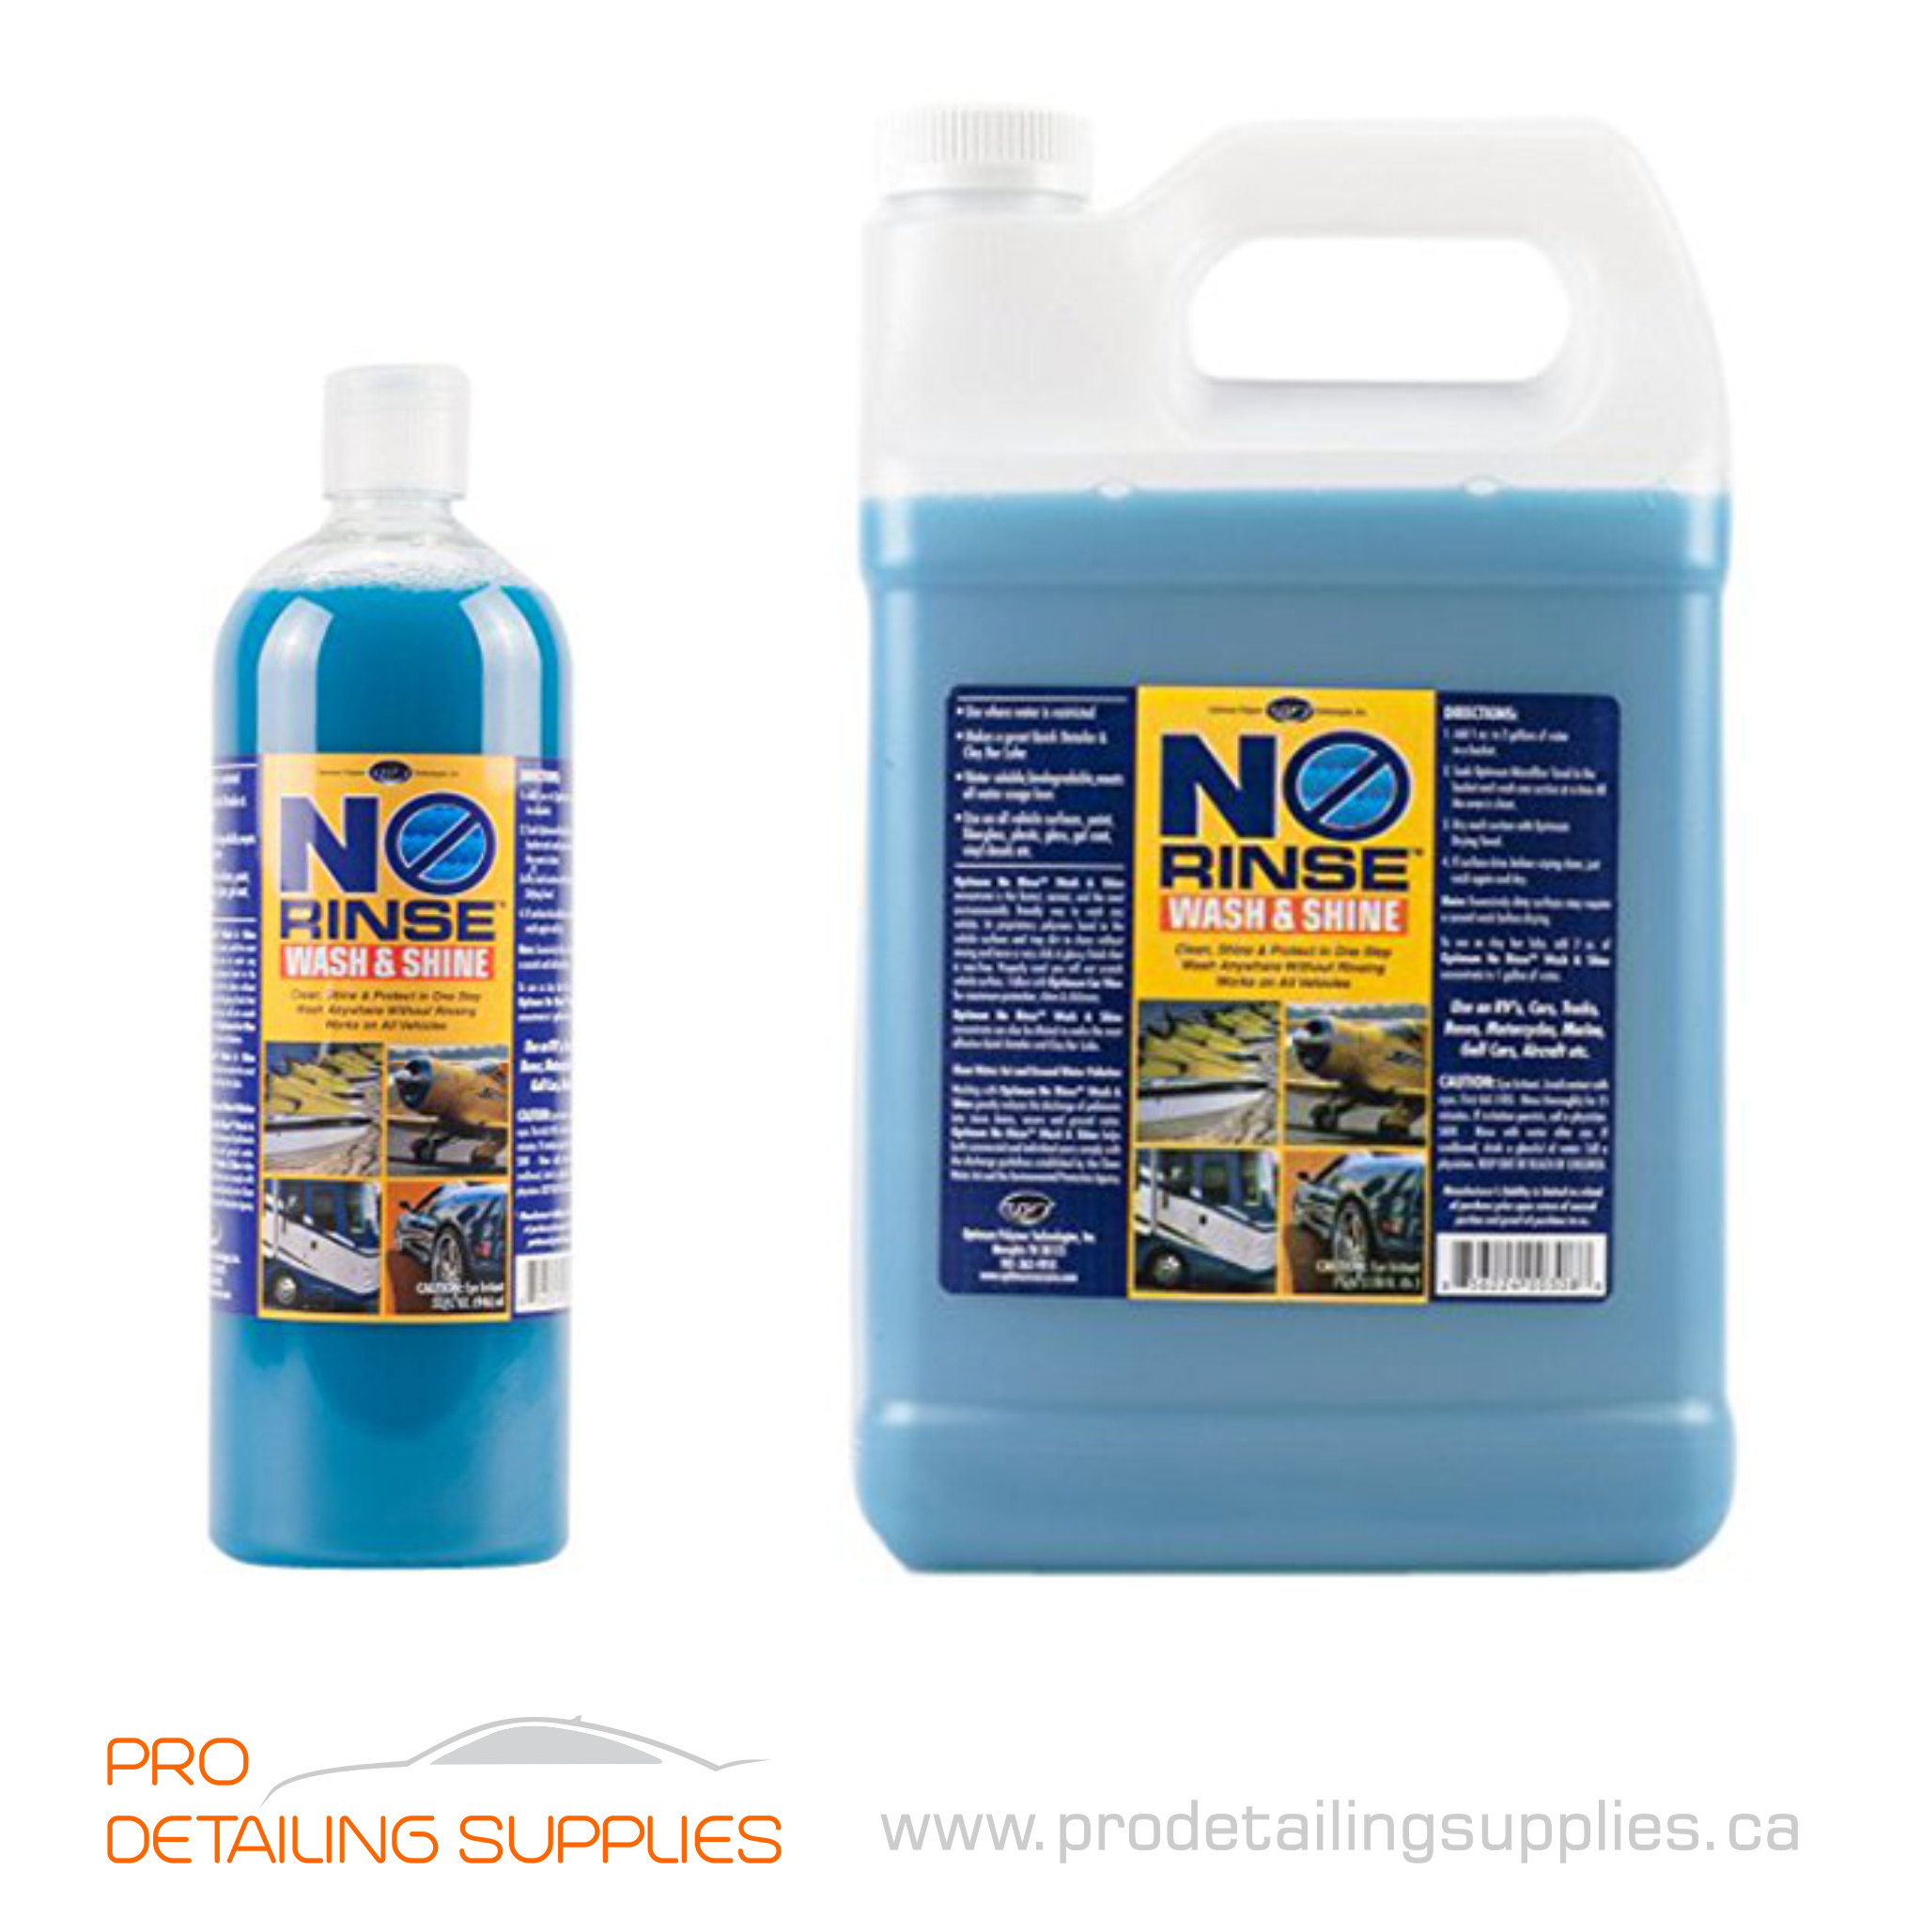 Optimum No Rinse >> Optimum No Rinse Wash Shine Prodetailingsupplies